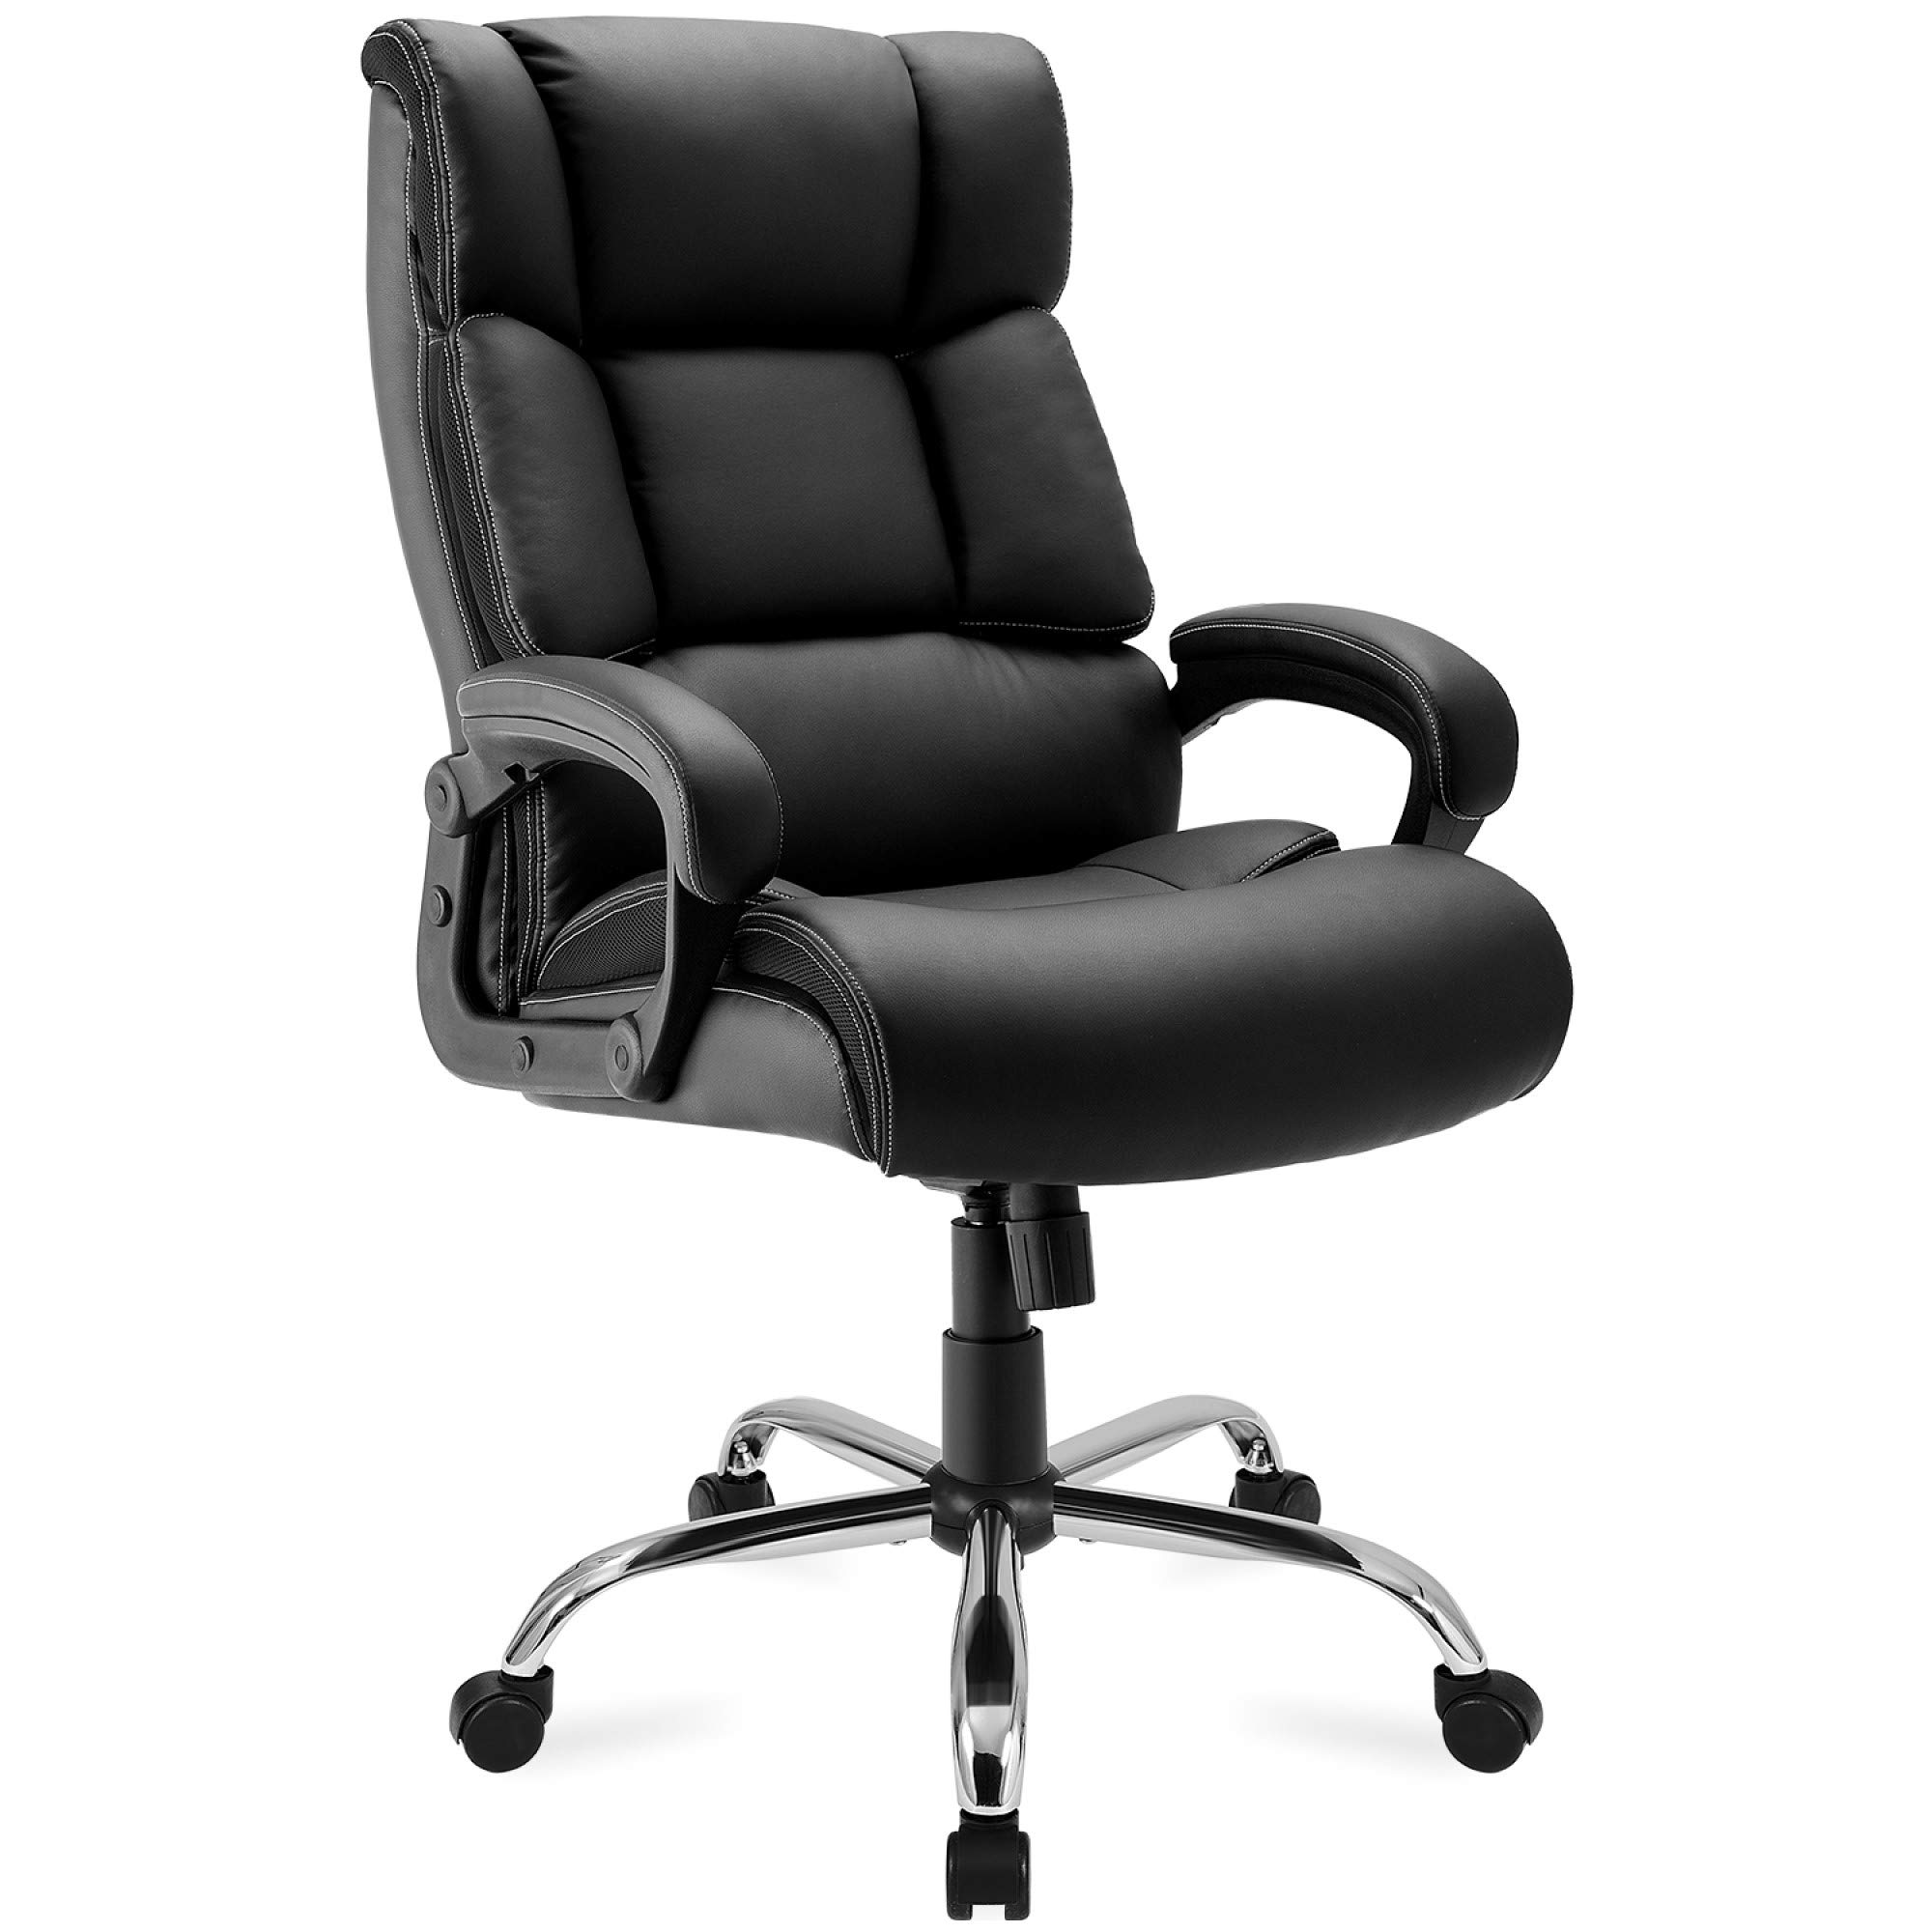 Mid-Back Office Desk Chair Quality PU Leather Computer Chair with Armrest Adjustable Heightt (Black2) by DERCASS